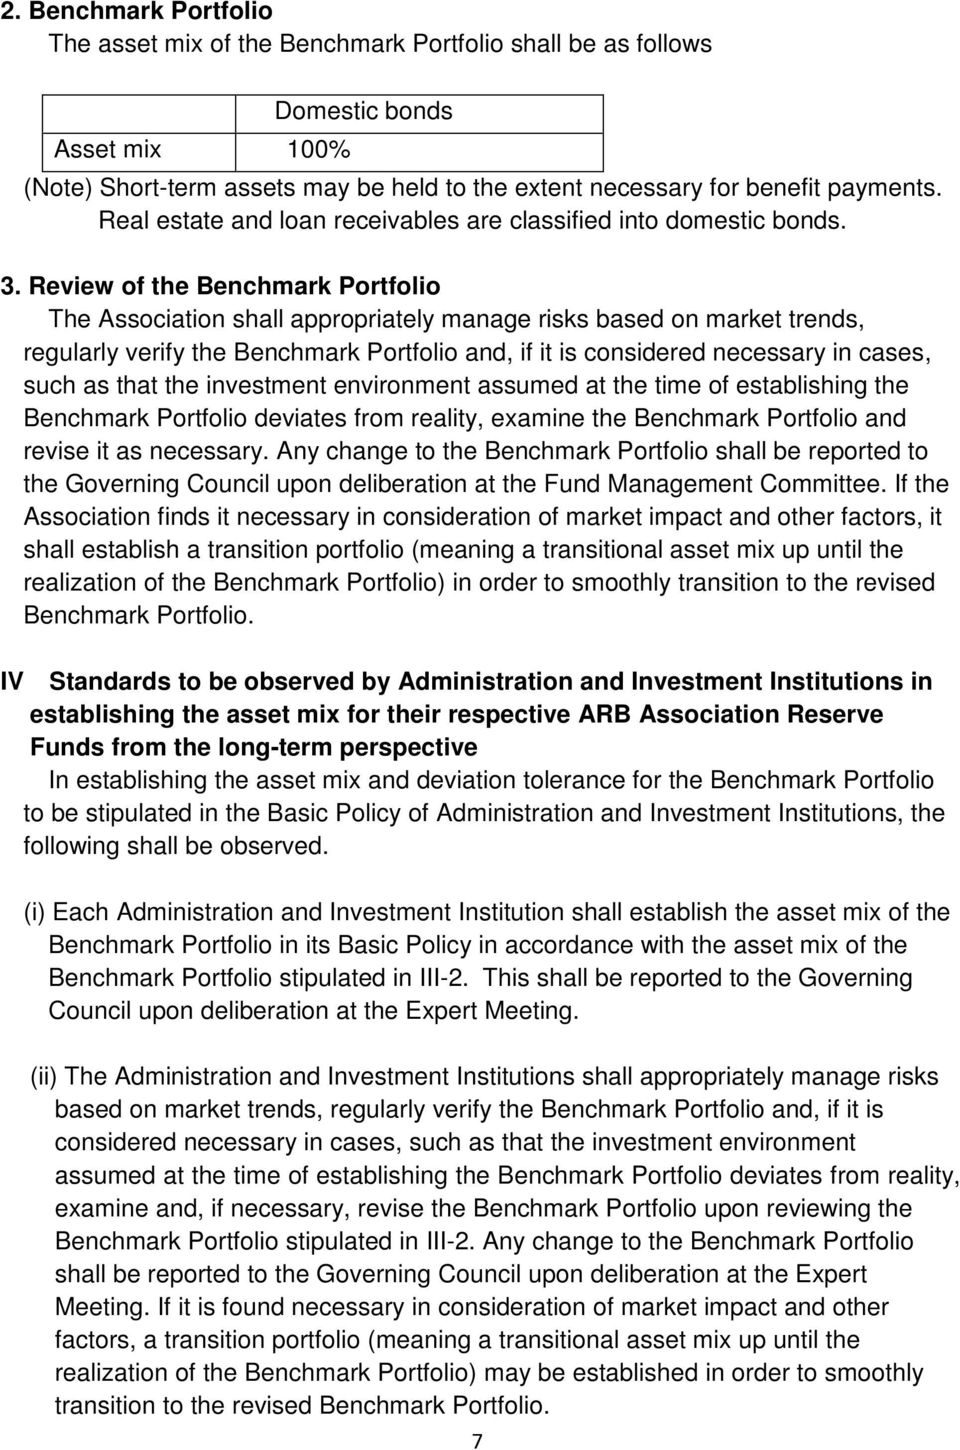 Review of the Benchmark Portfolio The Association shall appropriately manage risks based on market trends, regularly verify the Benchmark Portfolio and, if it is considered necessary in cases, such